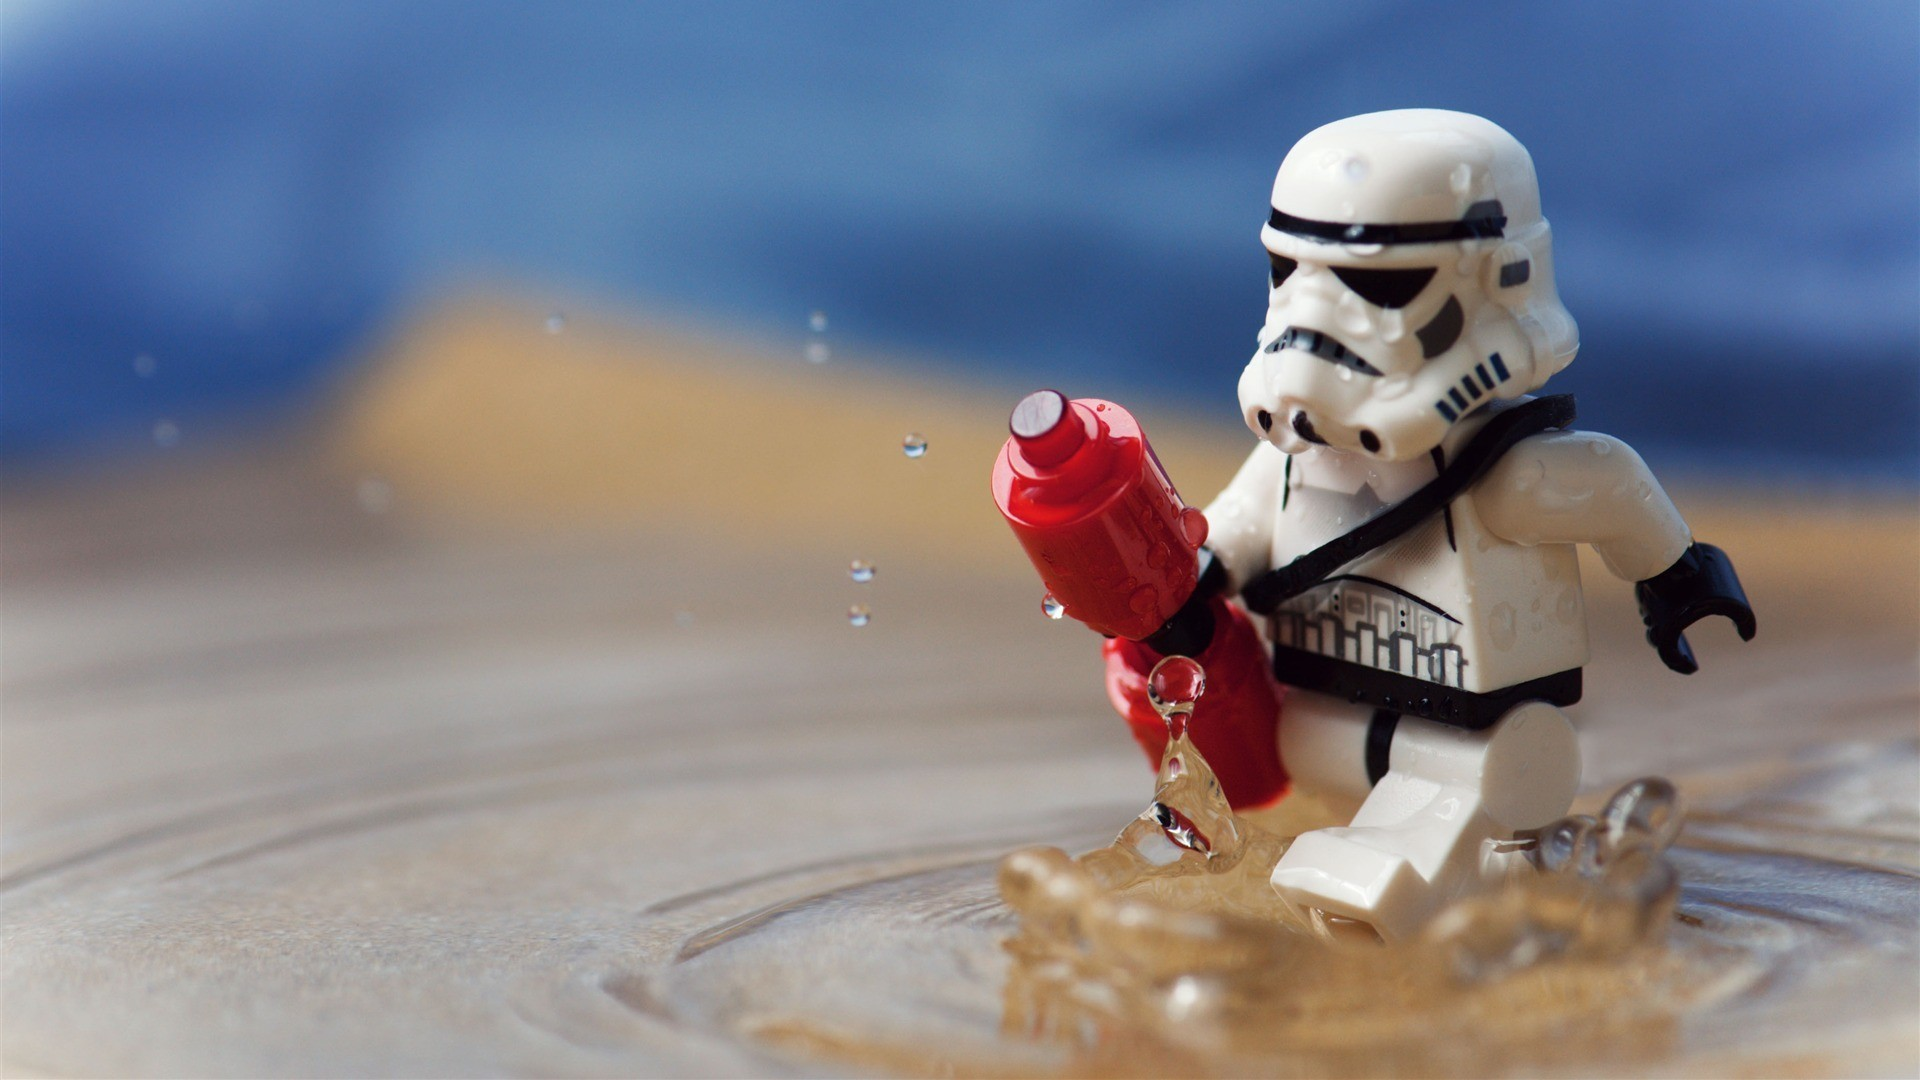 Res: 1920x1080, Lego storm troopers